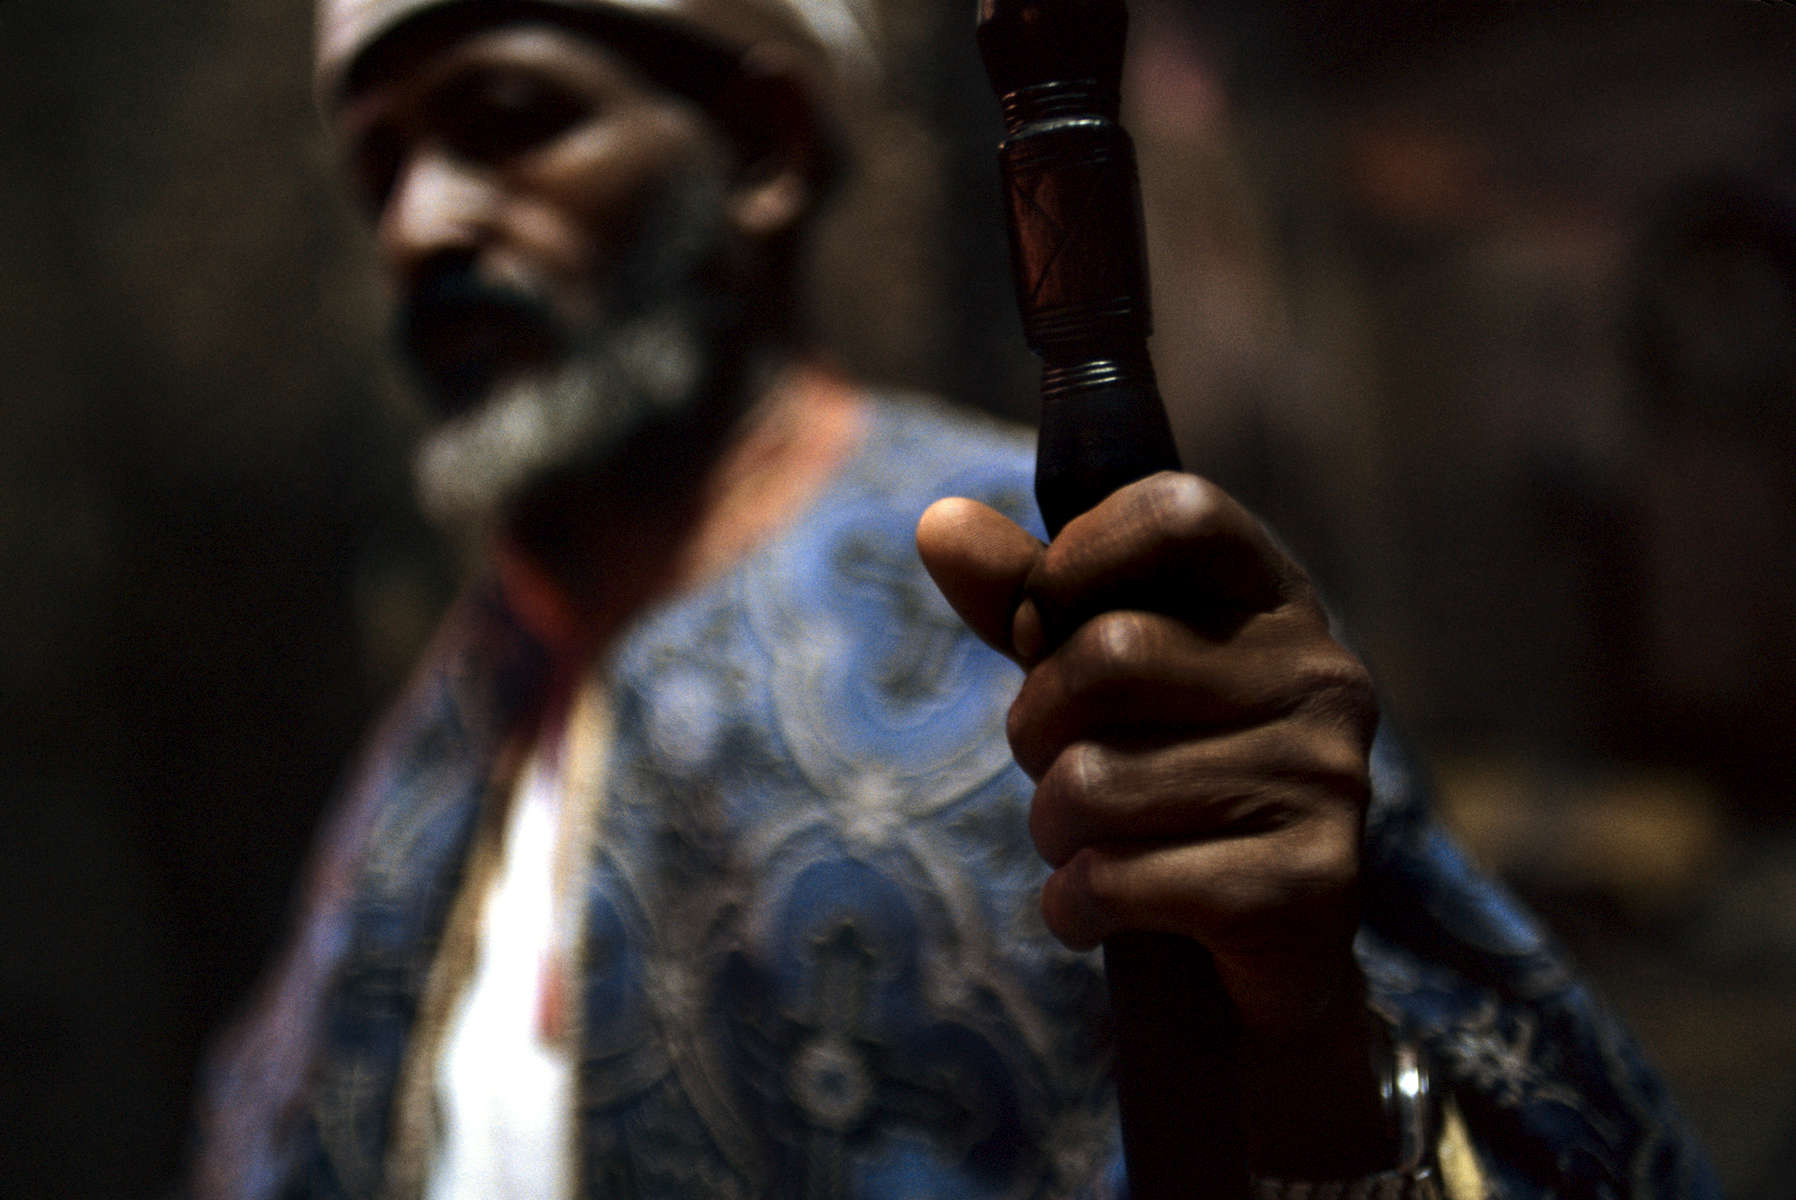 Coptic priest in orthodox church, Lalibela, Ethiopia 2004